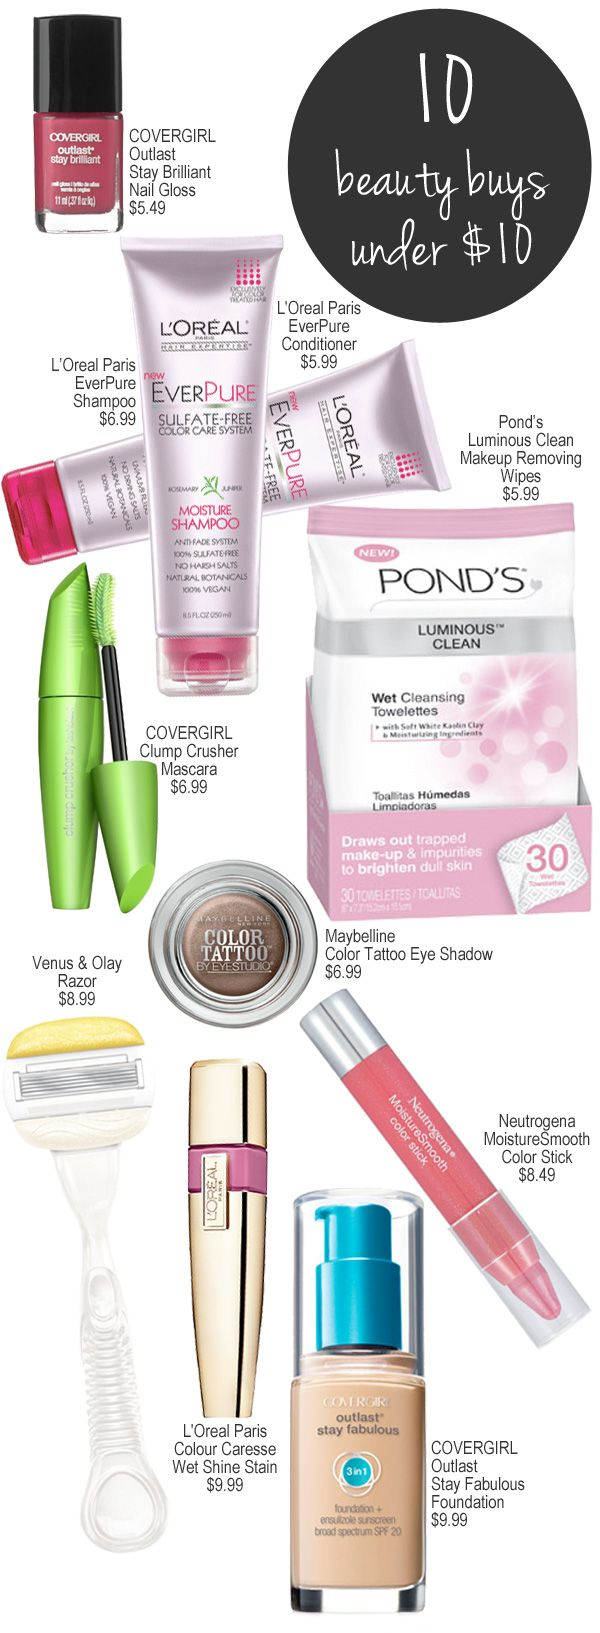 Top 10 Beauty Buys Under$10.00. - Home - Beautiful Makeup Search: Beauty Blog, Makeup & Skin Care Reviews, Beauty Tips